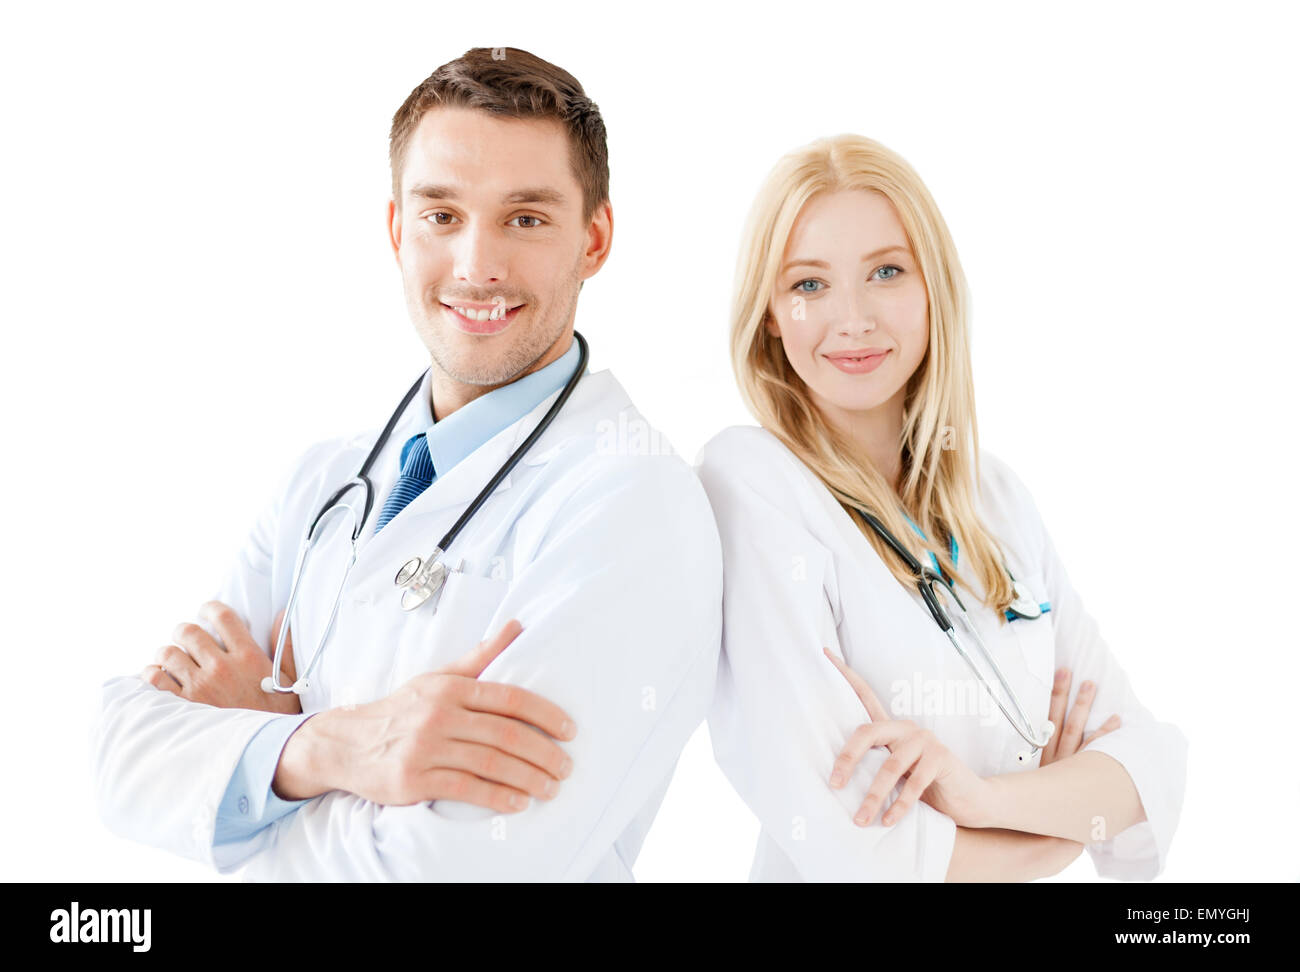 young male doctor and female nurse in hospital - Stock Image